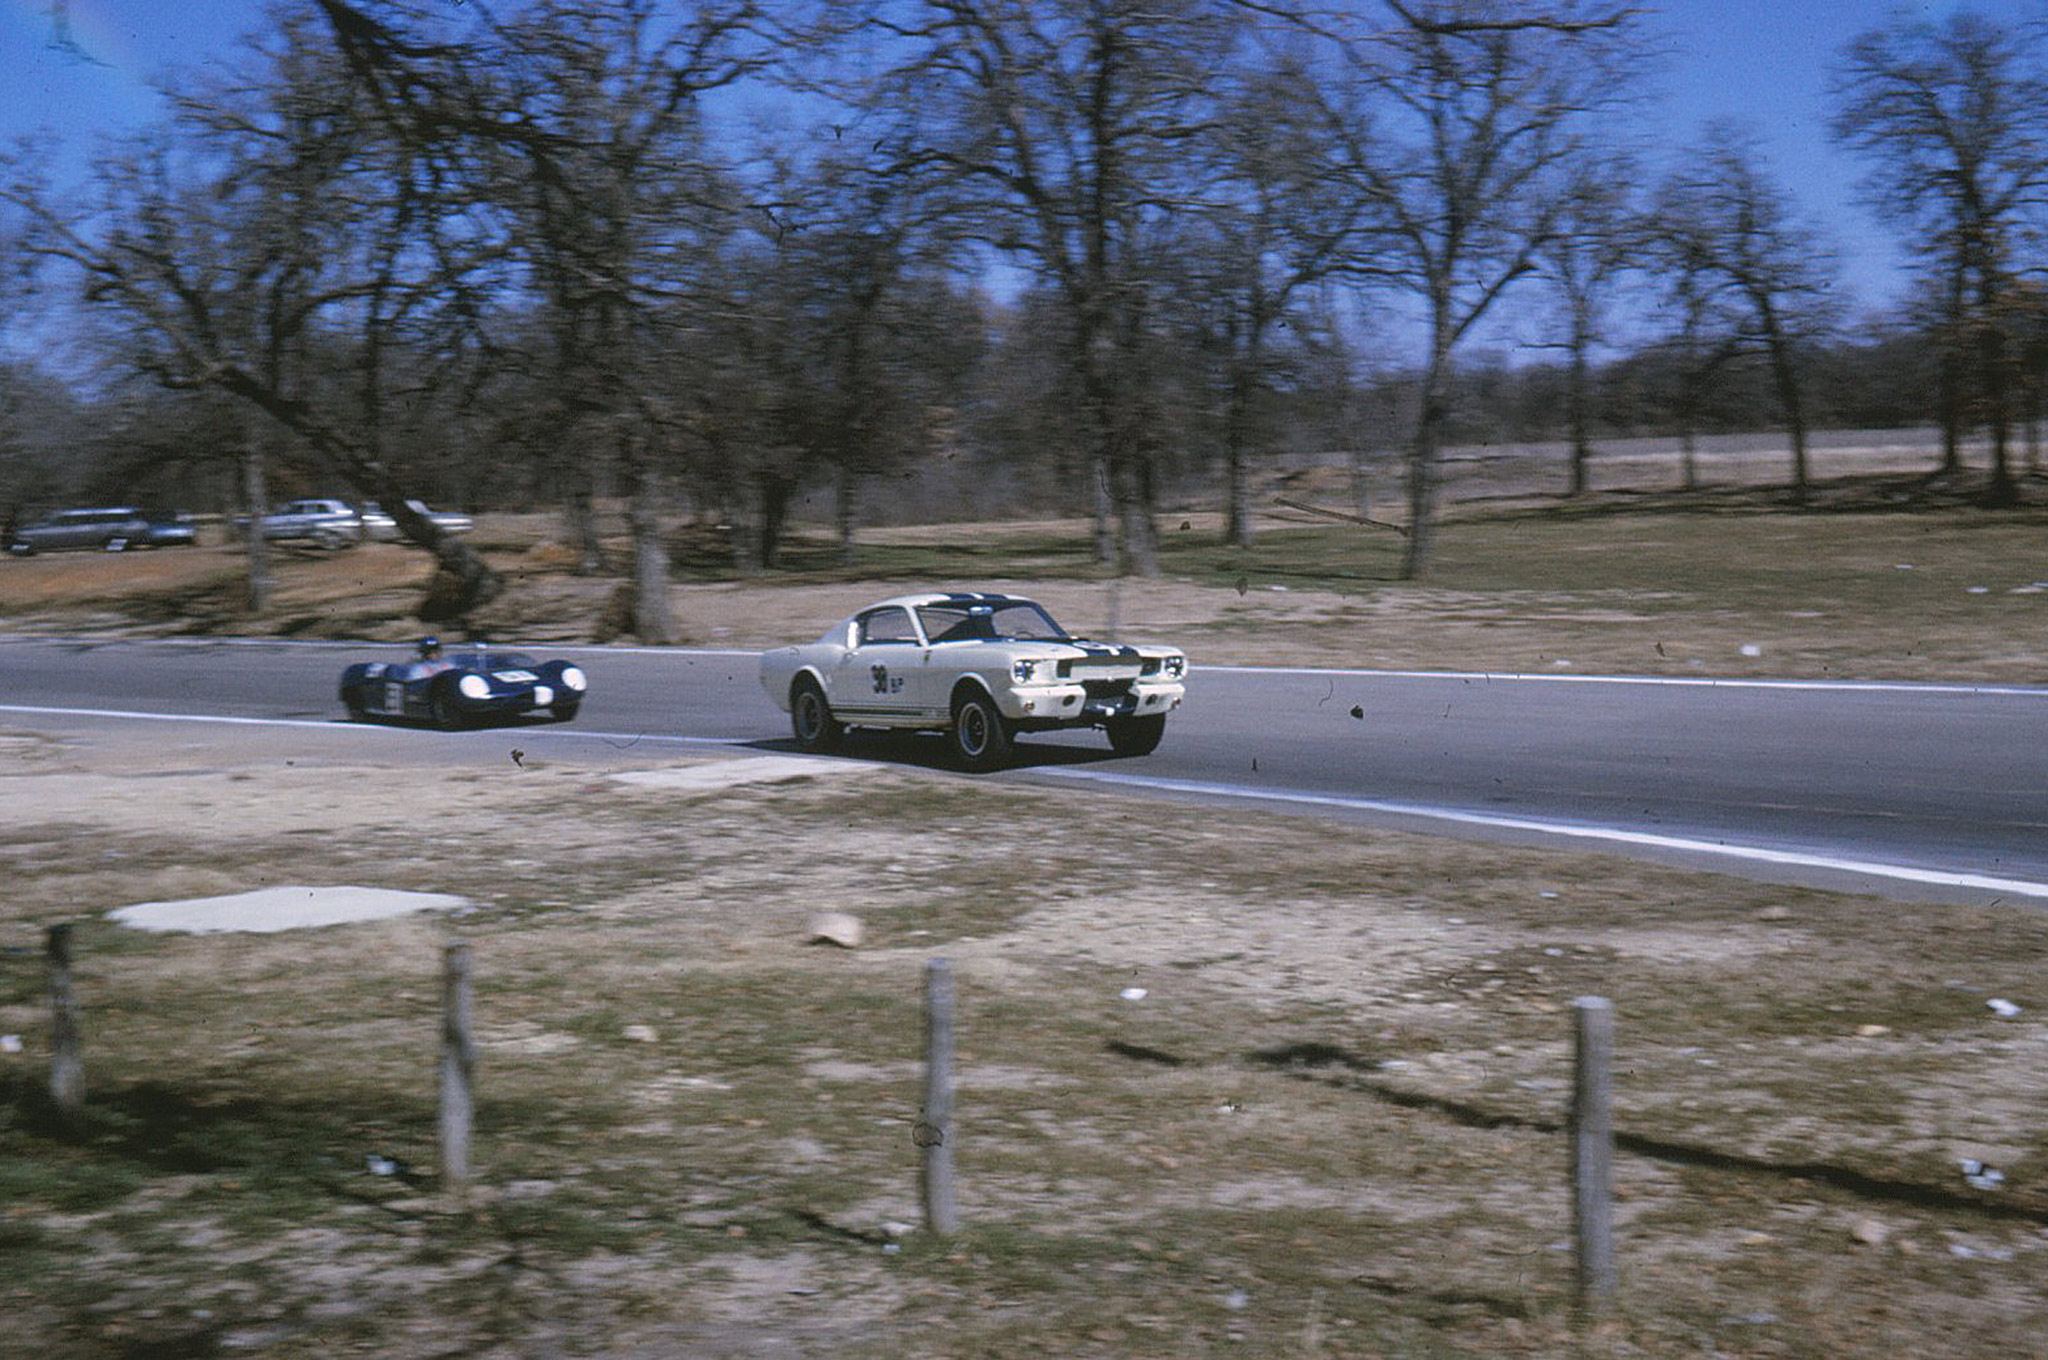 """The GT-350 R code is seen here leading the Merlyn in a preliminary race and approaching the rise in the road where the famous """"flying Mustang"""" photo was taken. Art Sahlstein pointed out that Charles Barns had tape over the drivers side grill only during the prelims, when the air temperature was much cooler than the following events. The Sahlstein's blue 1963 Fairlane 500 Sports coupe can been seen in the background, and is now in Art's possession. Several of the trees in this picture enabled Art to locate portions of the old track recently.   (Art Sahlstein photo)"""